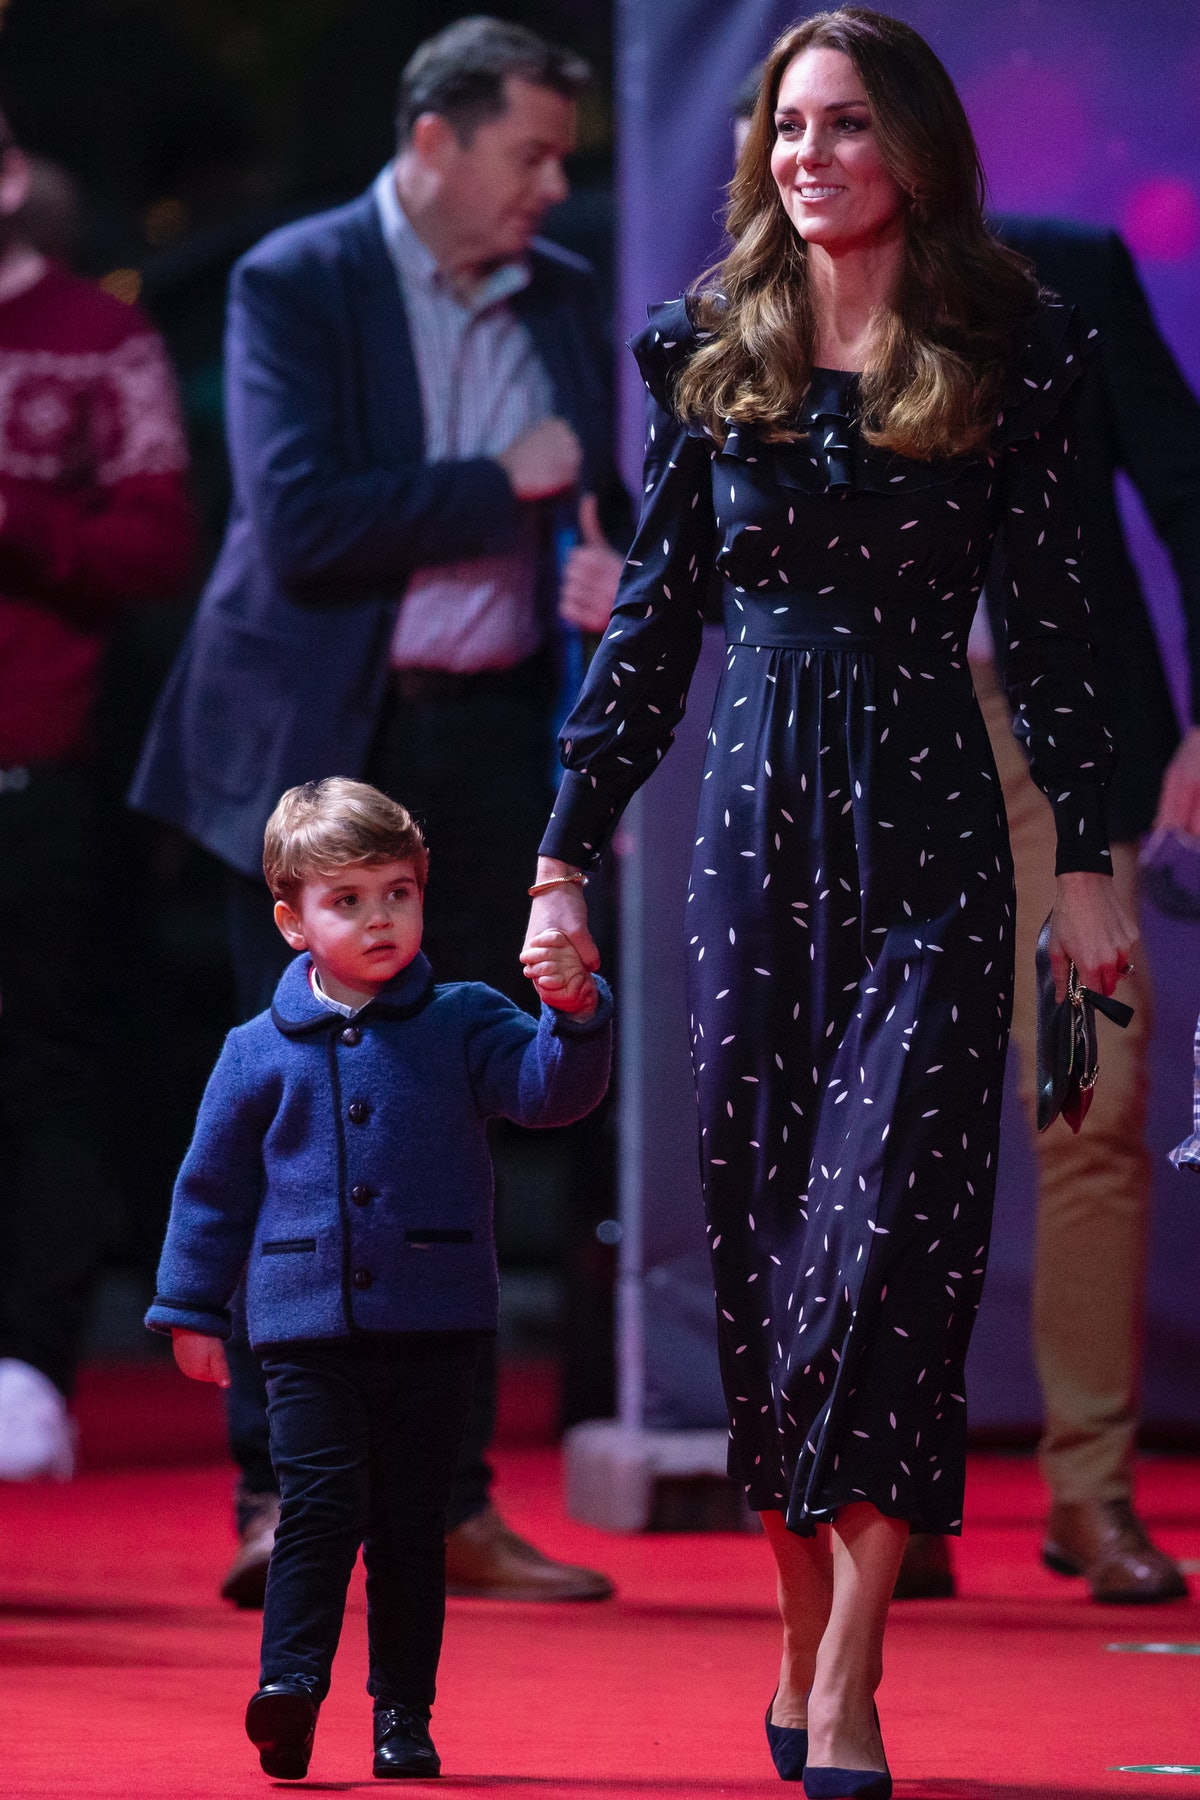 Prince Louis holding hands with his mom, Kate Middleton